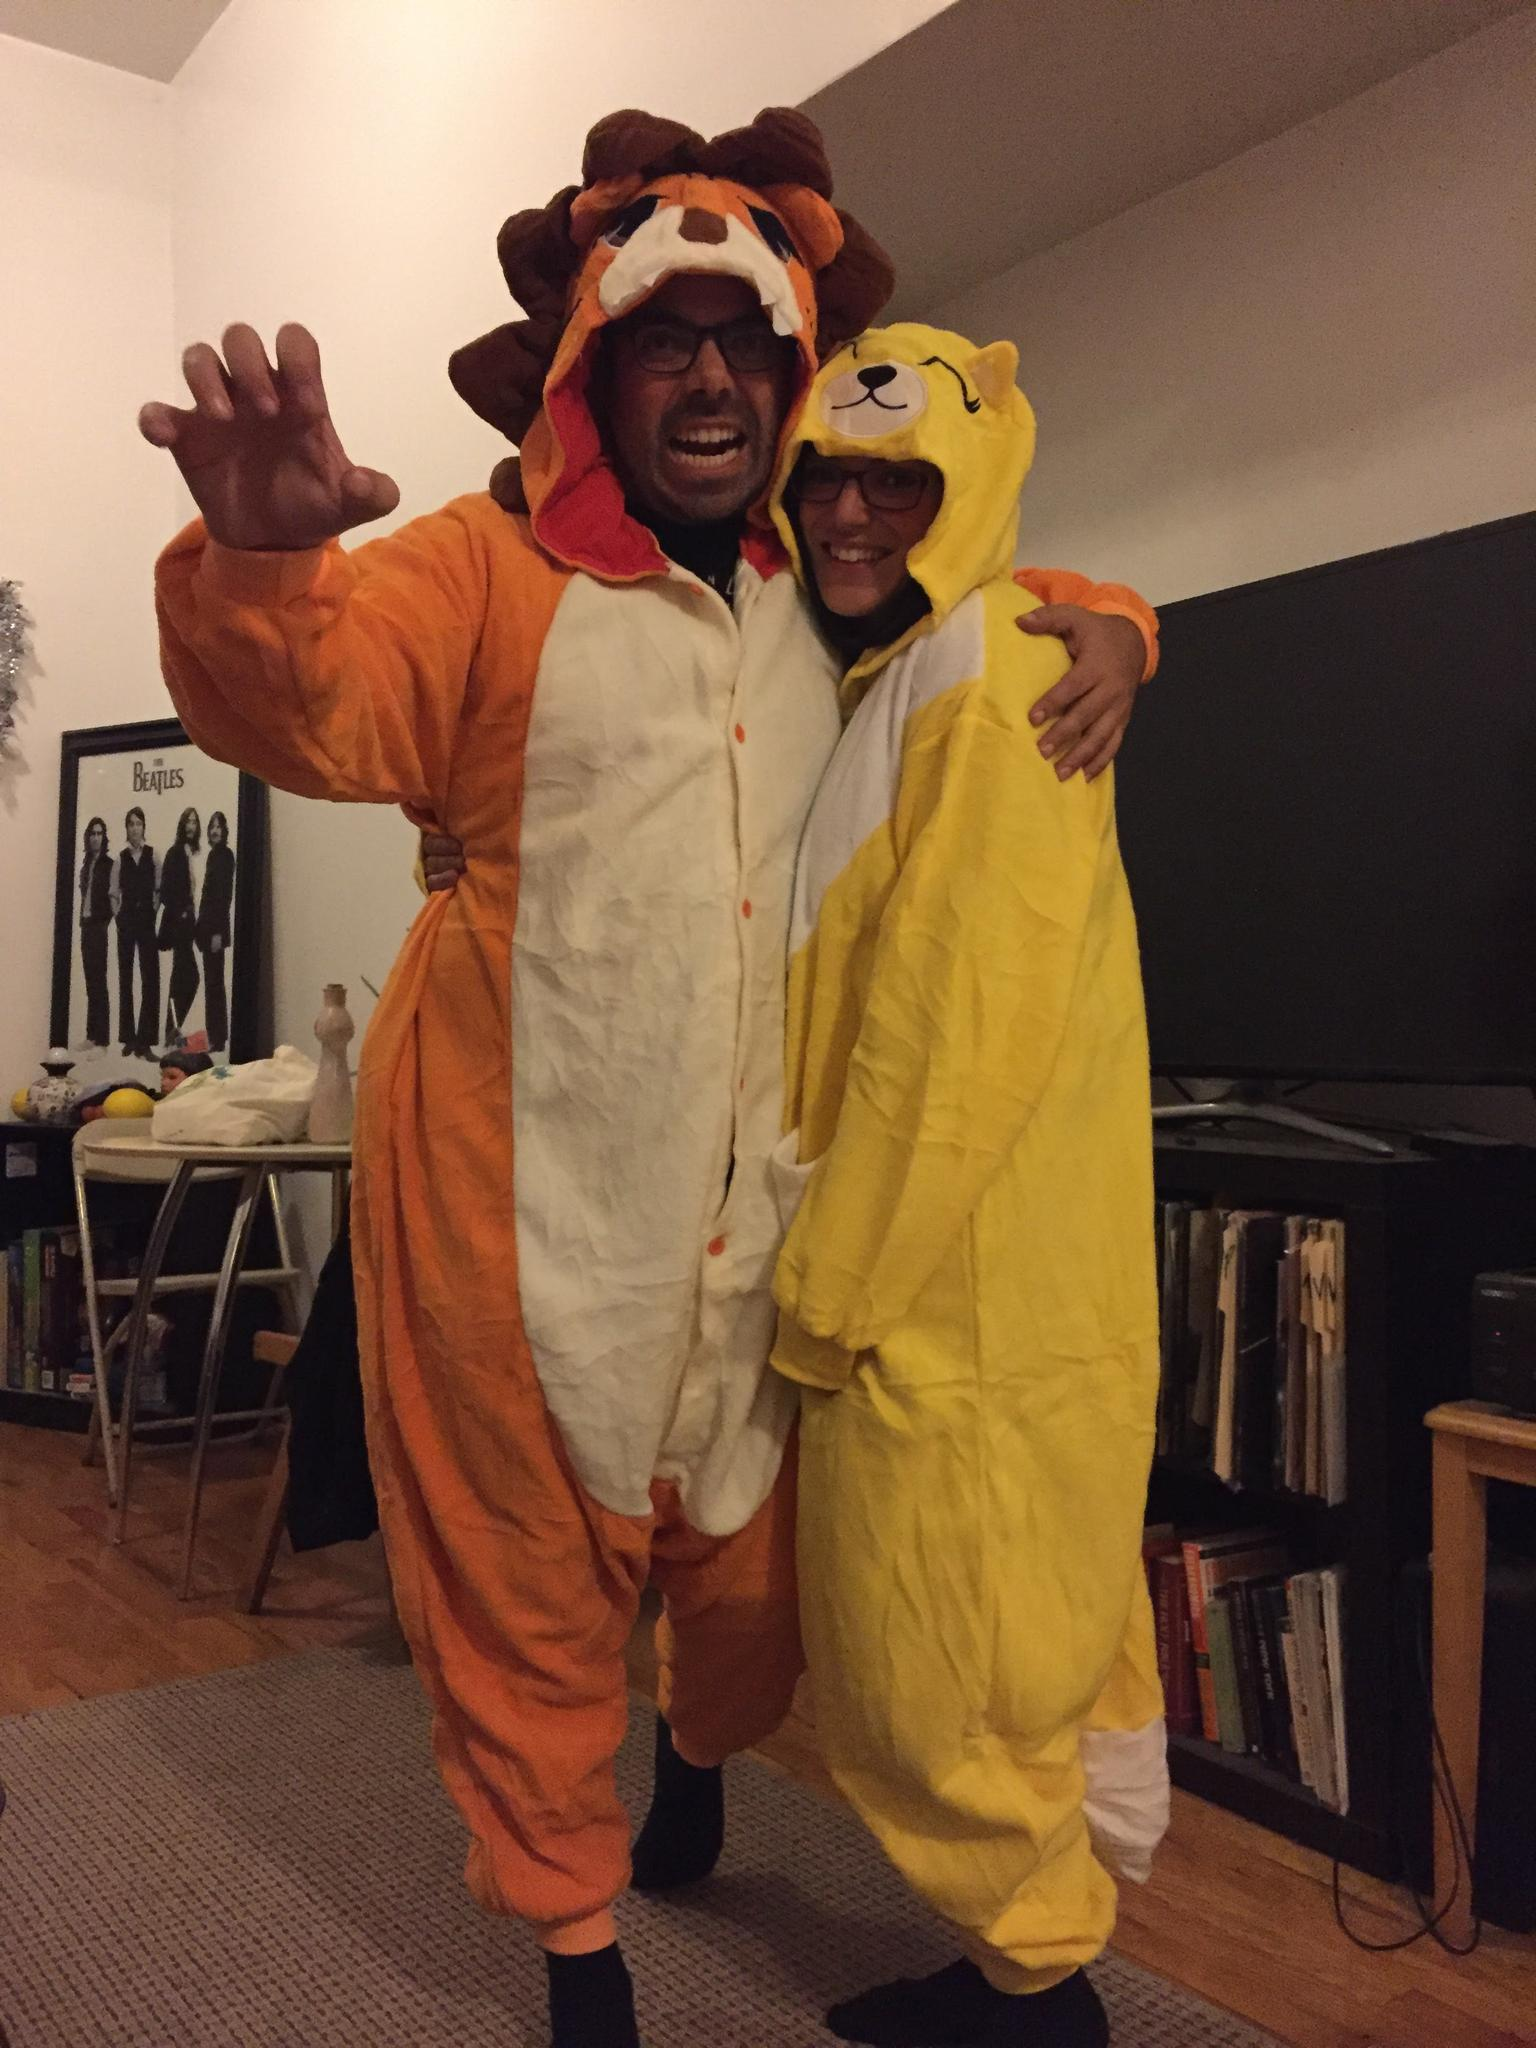 The only Halloween costumes we own (and will ever own)